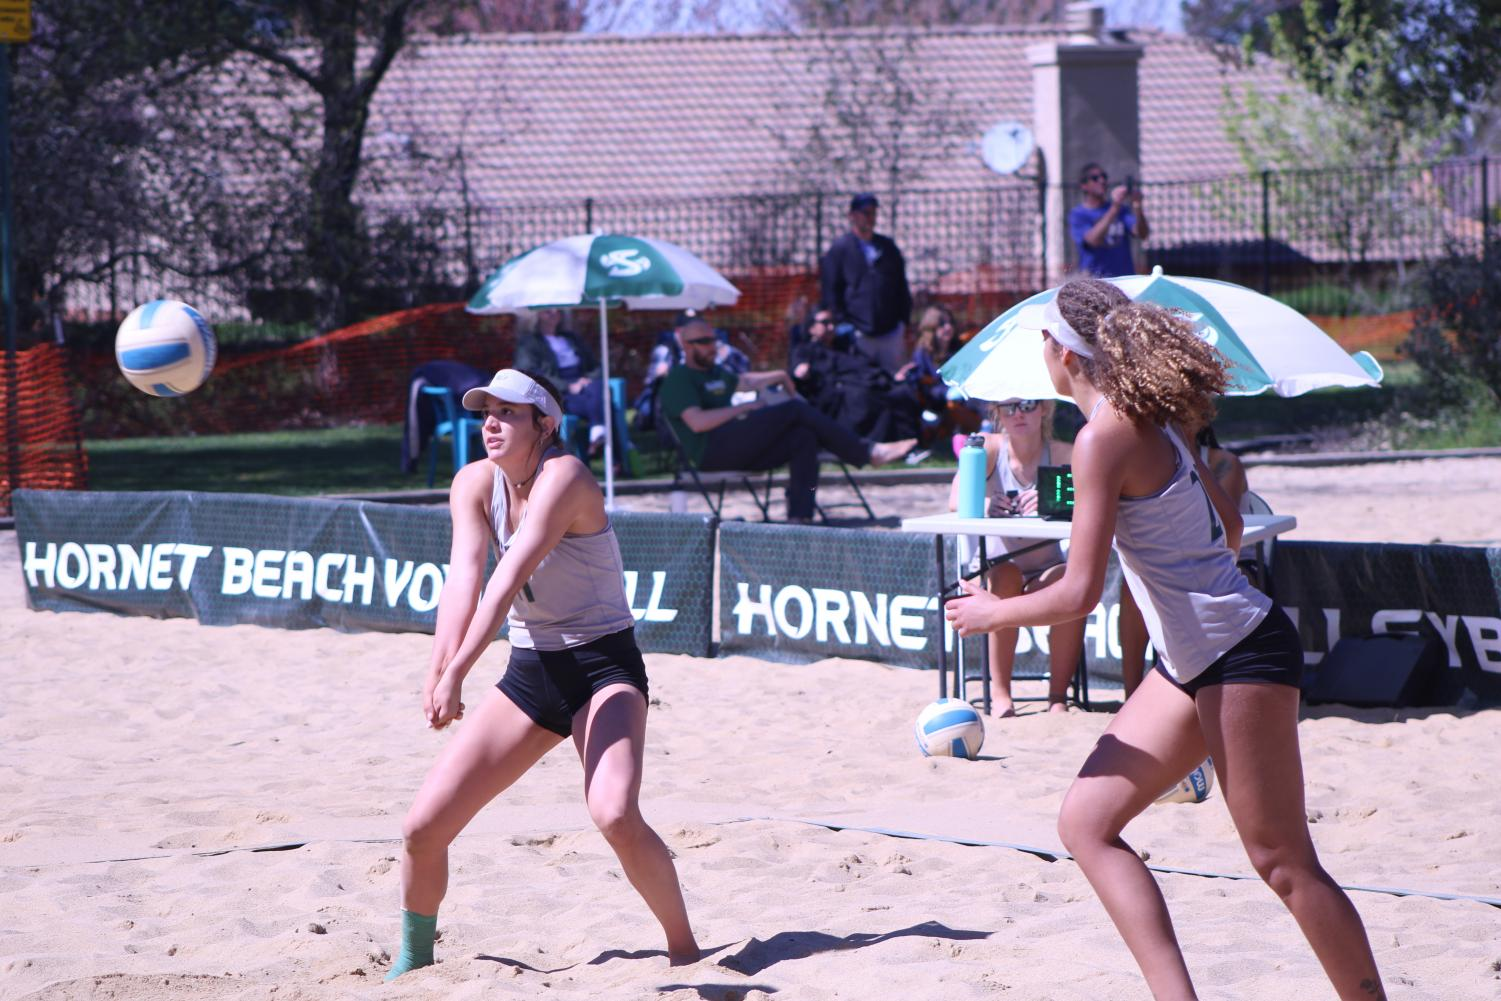 Sac State junior Paige Swinney gets in position to bump set the ball as sophomore Macey Hayden looks on in anticipation to make a play off the set. Sac State women's beach volleyball went 1-3 in its first two-day tournament this season at Livermore Park in Folsom on Saturday, moving their record to 1-6 overall.